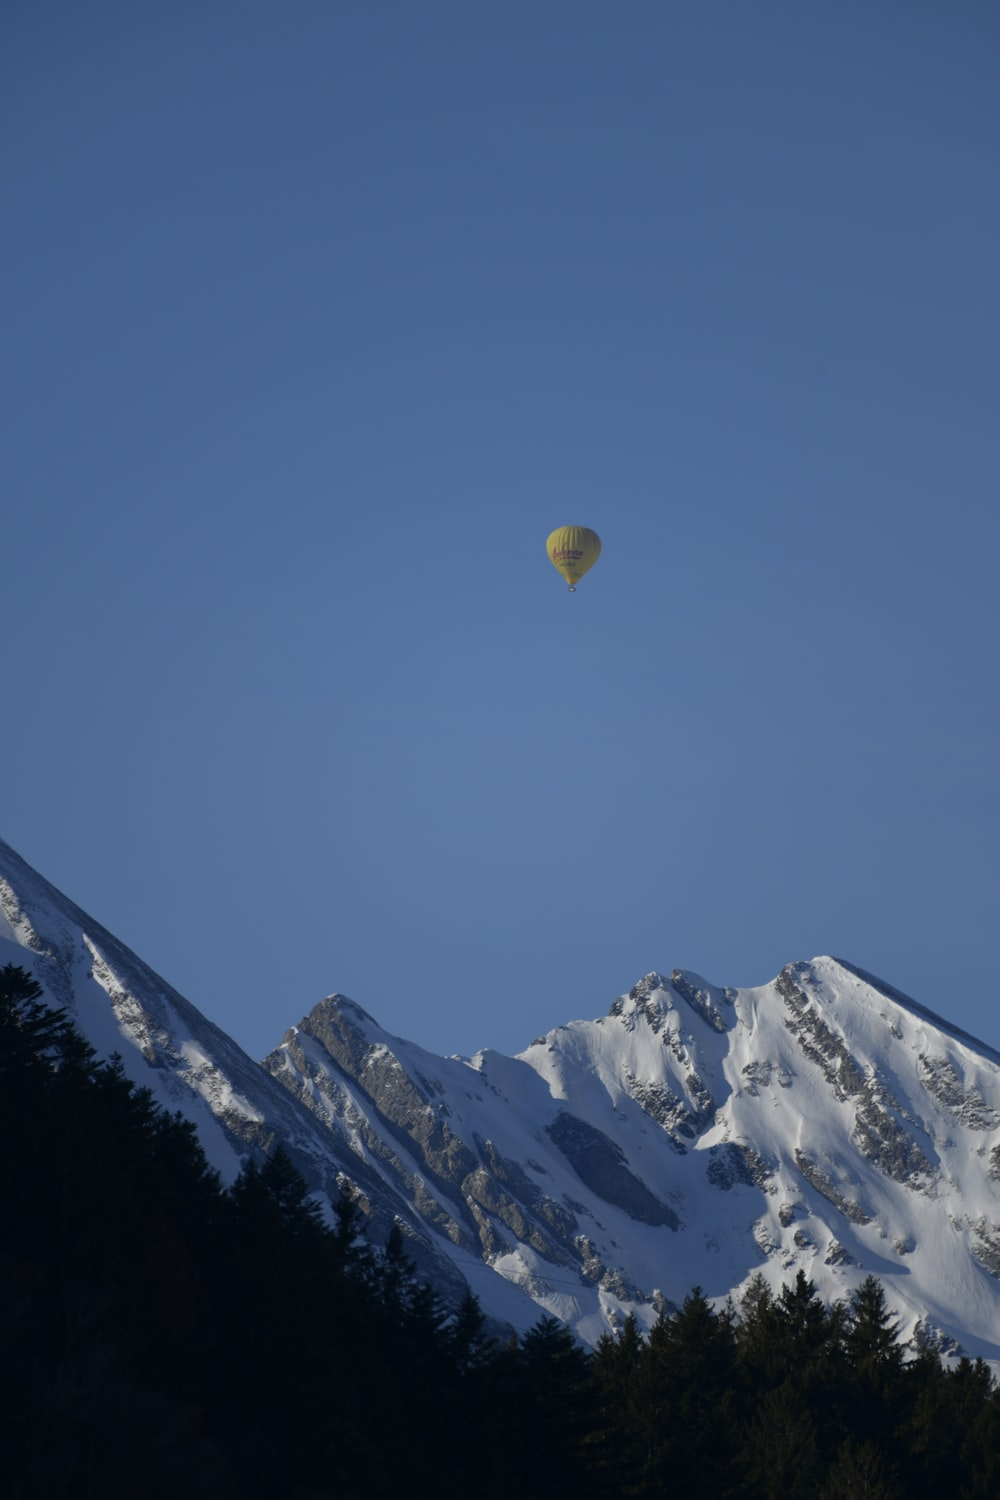 hot air balloon flying over snow covered mountain